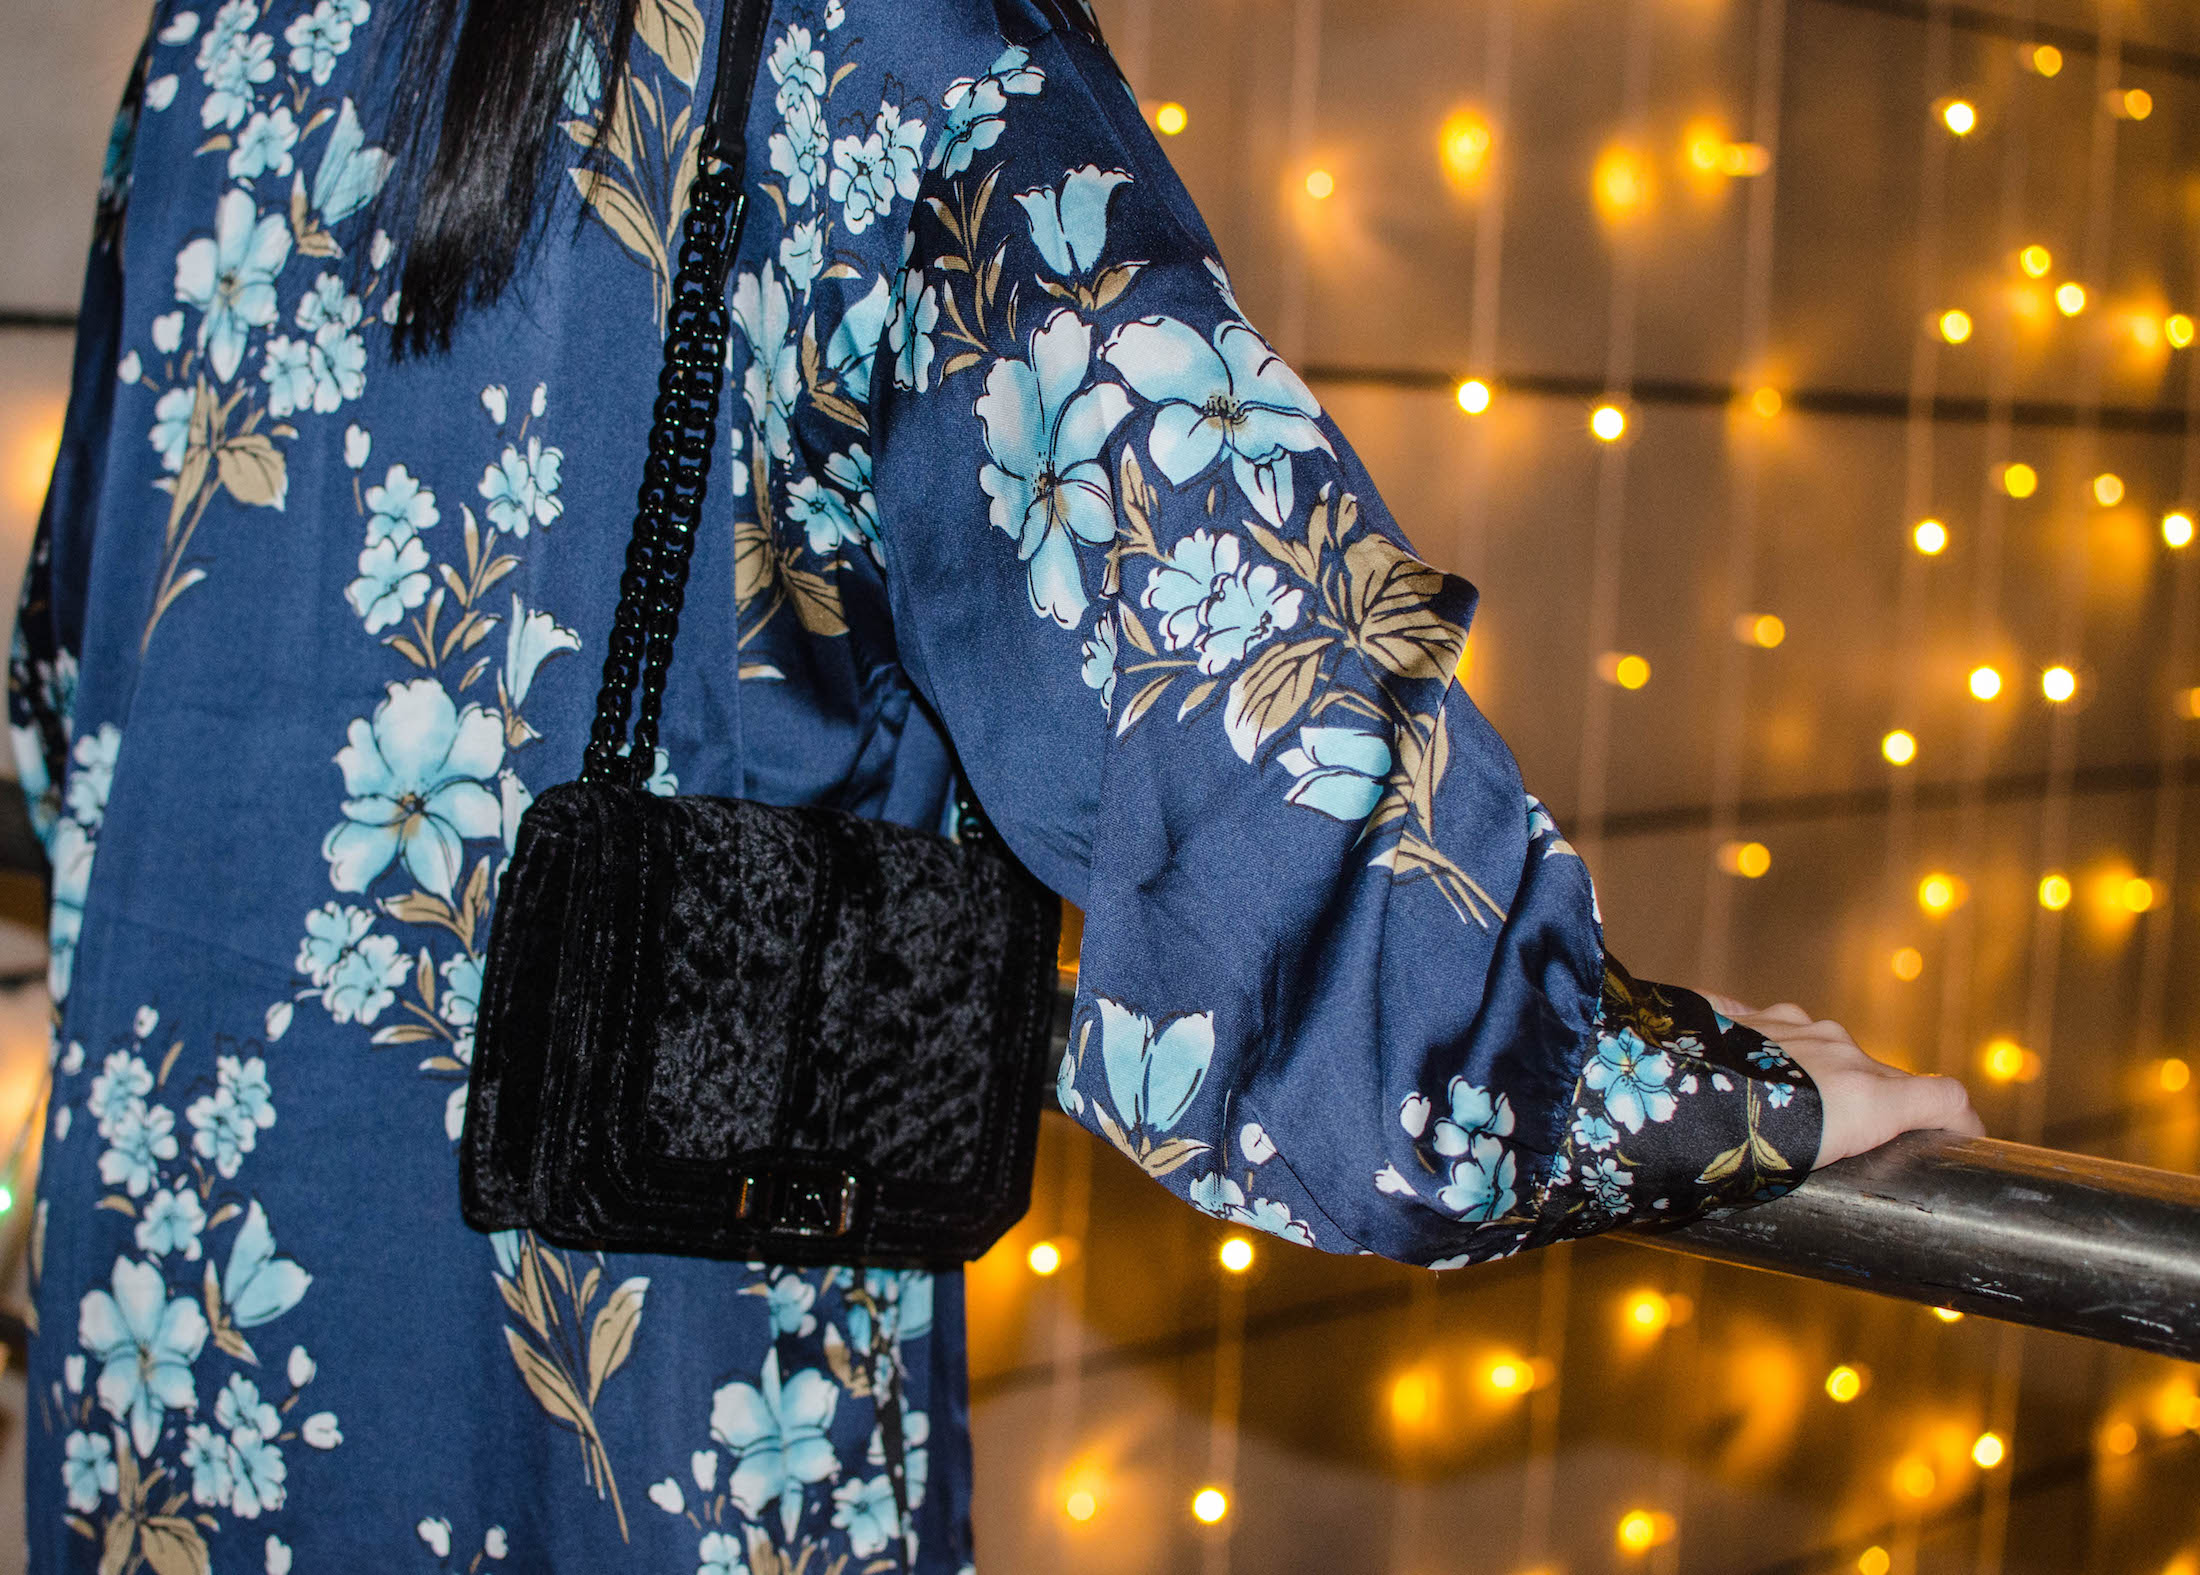 We're thinking of a great piece that makes a basic outfit not-so-basic. Any guesses? A KIMONO. Try this chic, easy piece this holiday.